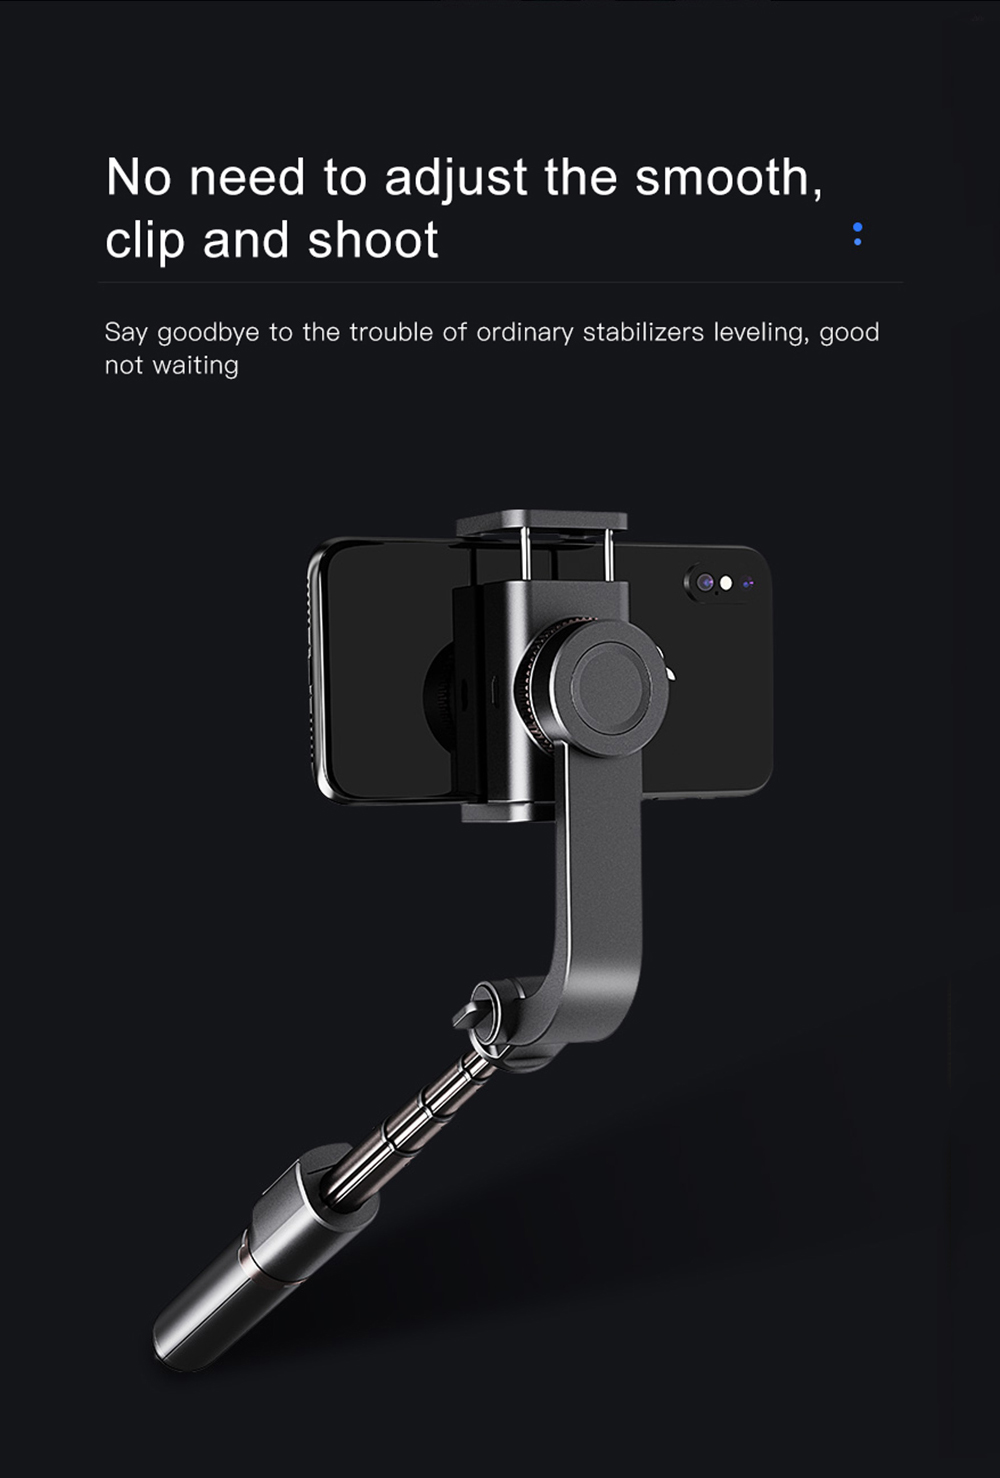 Bonola 3 in1 Handheld Gimbal Stabilizer Smartphone Selfie Stick Tripod For iOSAndroid Video Stabilizer For iPhone11ProSamsung (8)